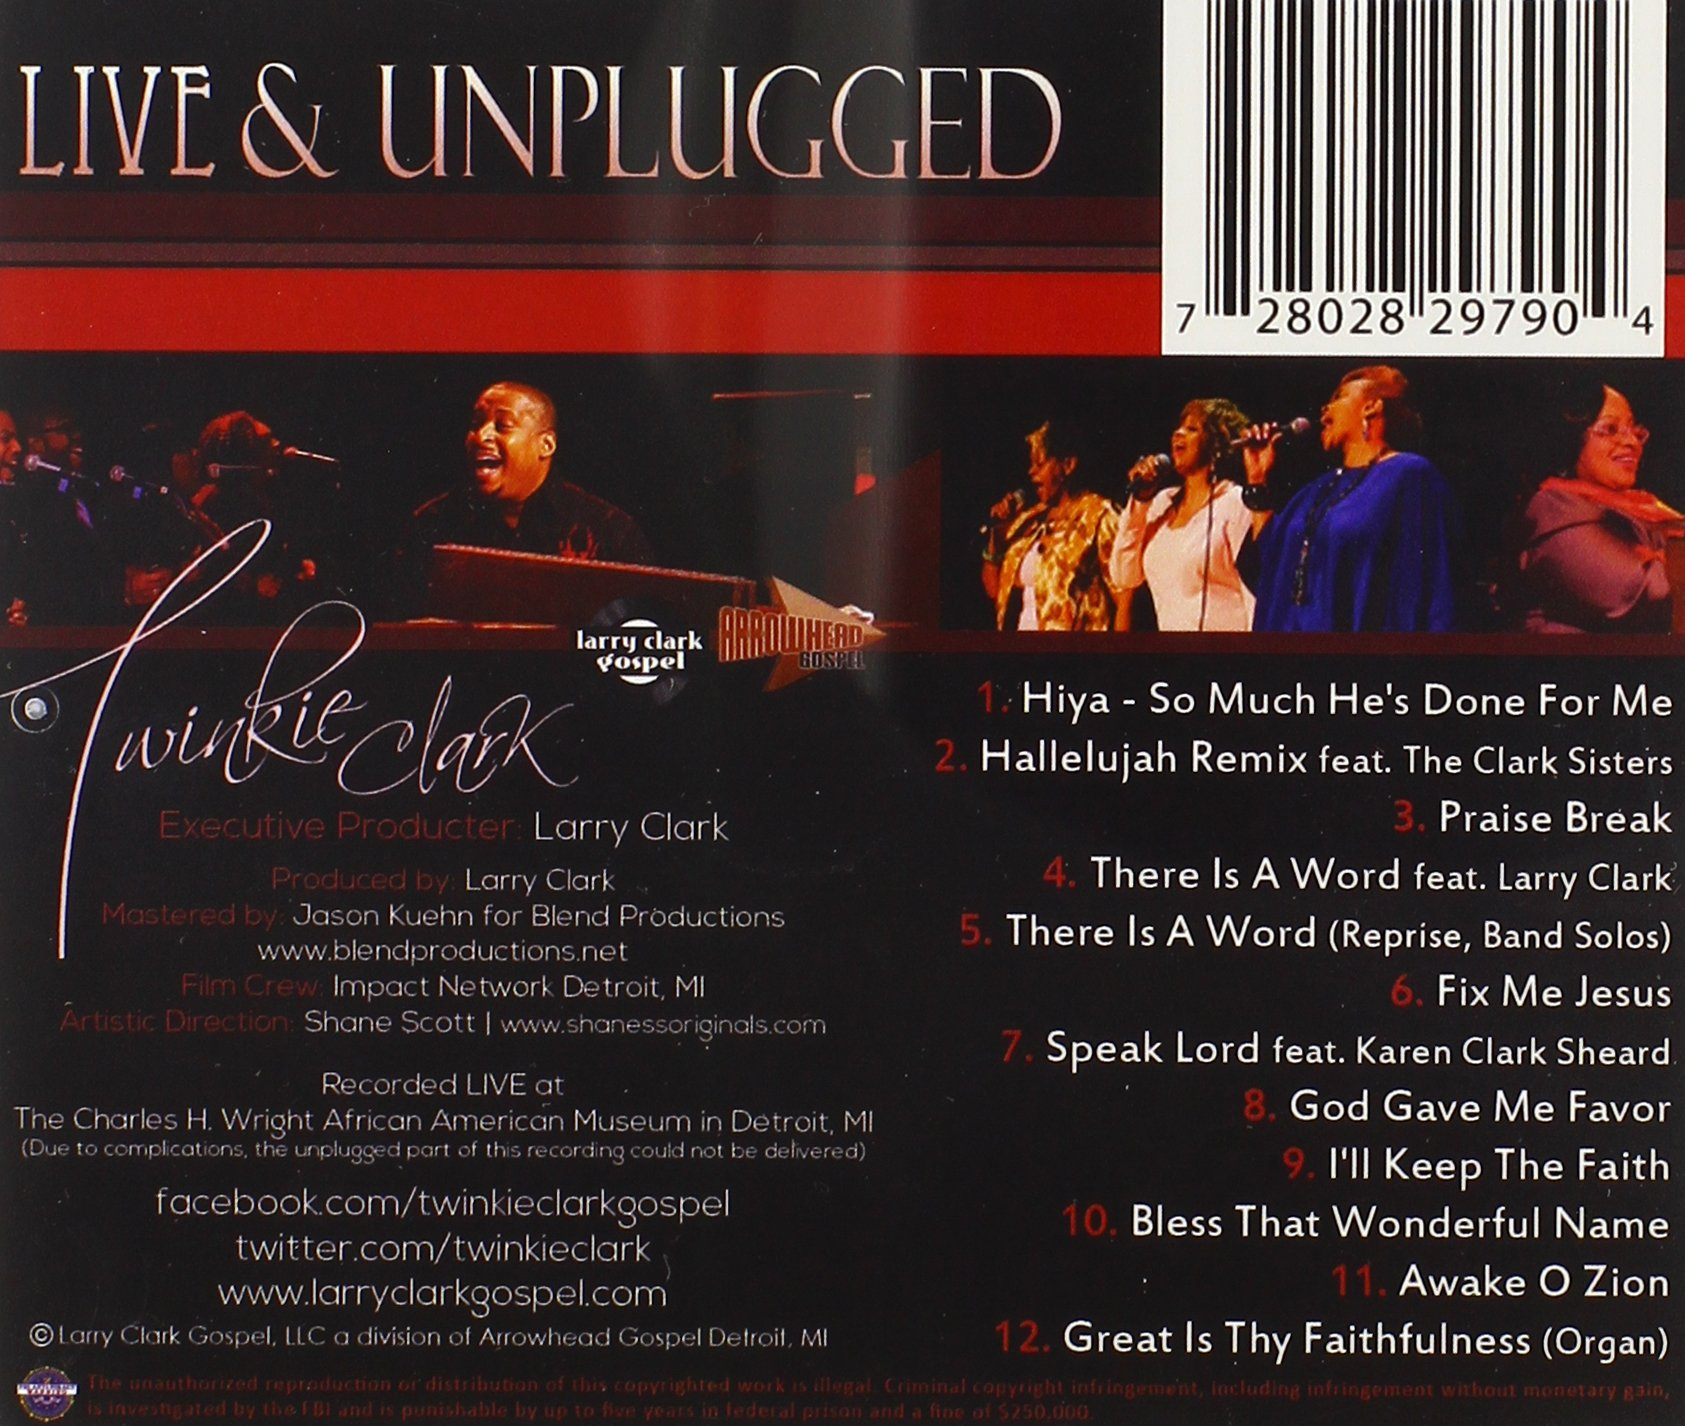 Live & Unplugged by Larry Clark Gospel